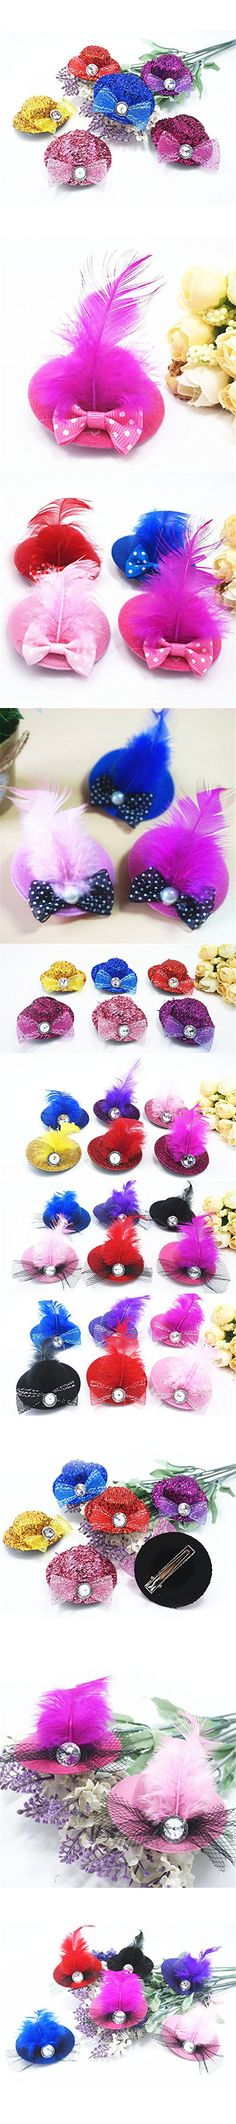 Zeroyoyo Pet Cat Dog Hats Pet Hairpin Bow Tie Ornaments Hat Christmas Party Wedding Decoration Random Colour